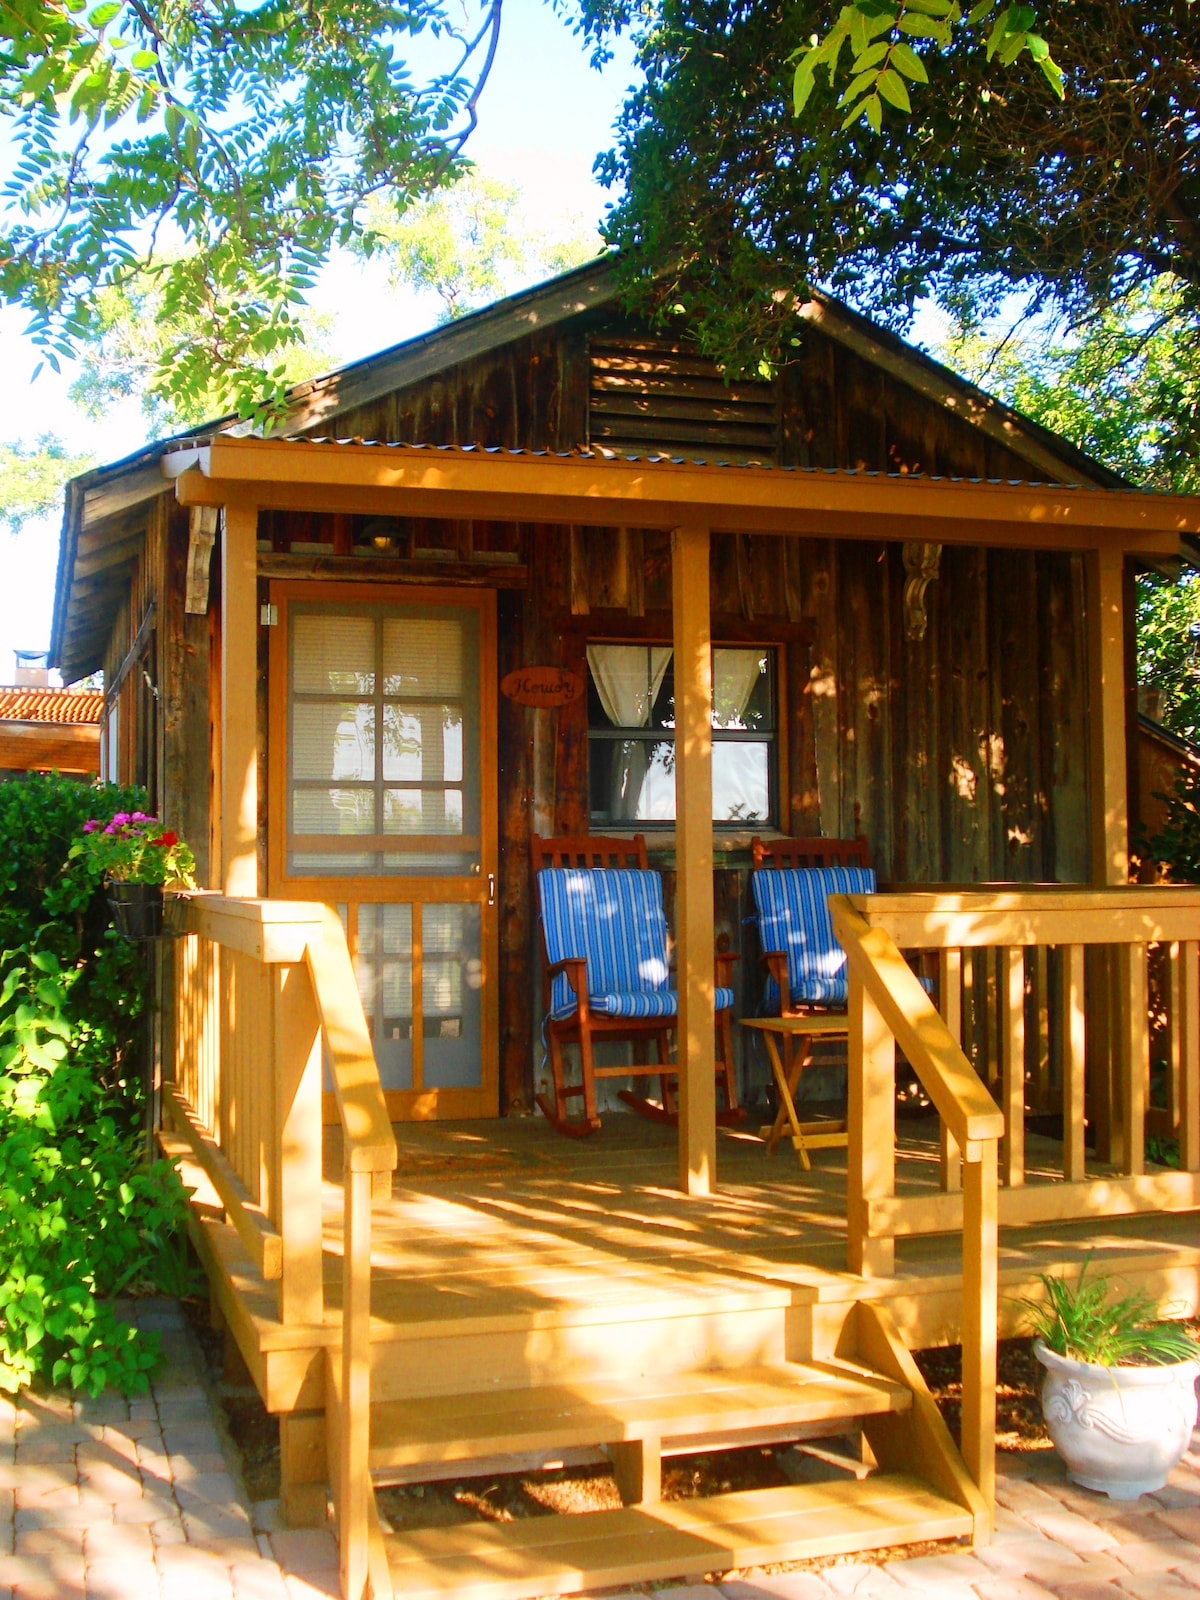 The Blue Heron Guest House